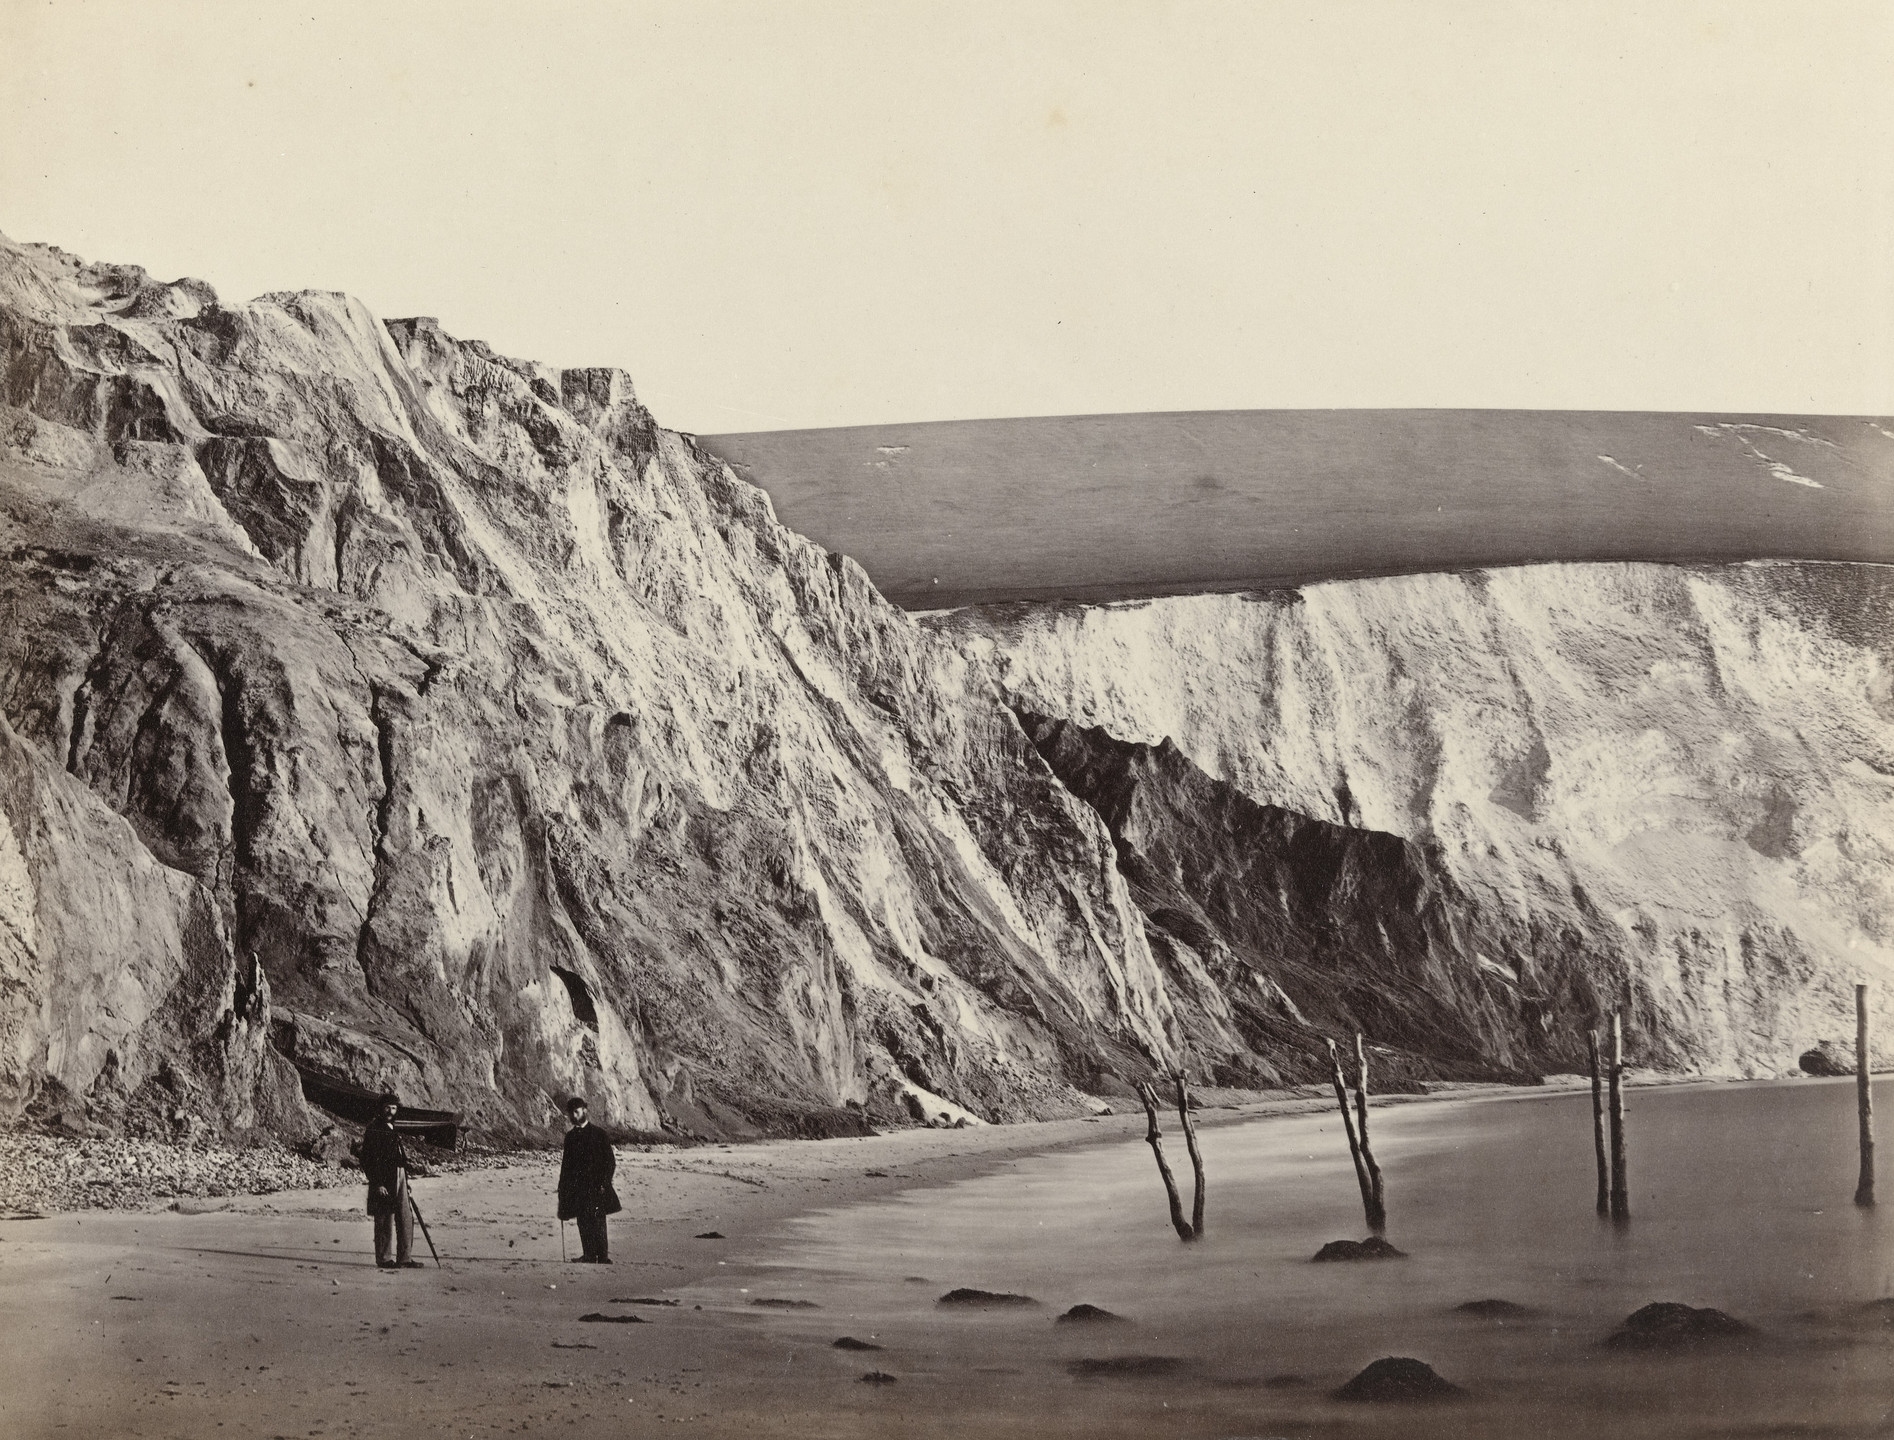 Francis Frith. Alum Bay, Isle of Wight. c. 1860